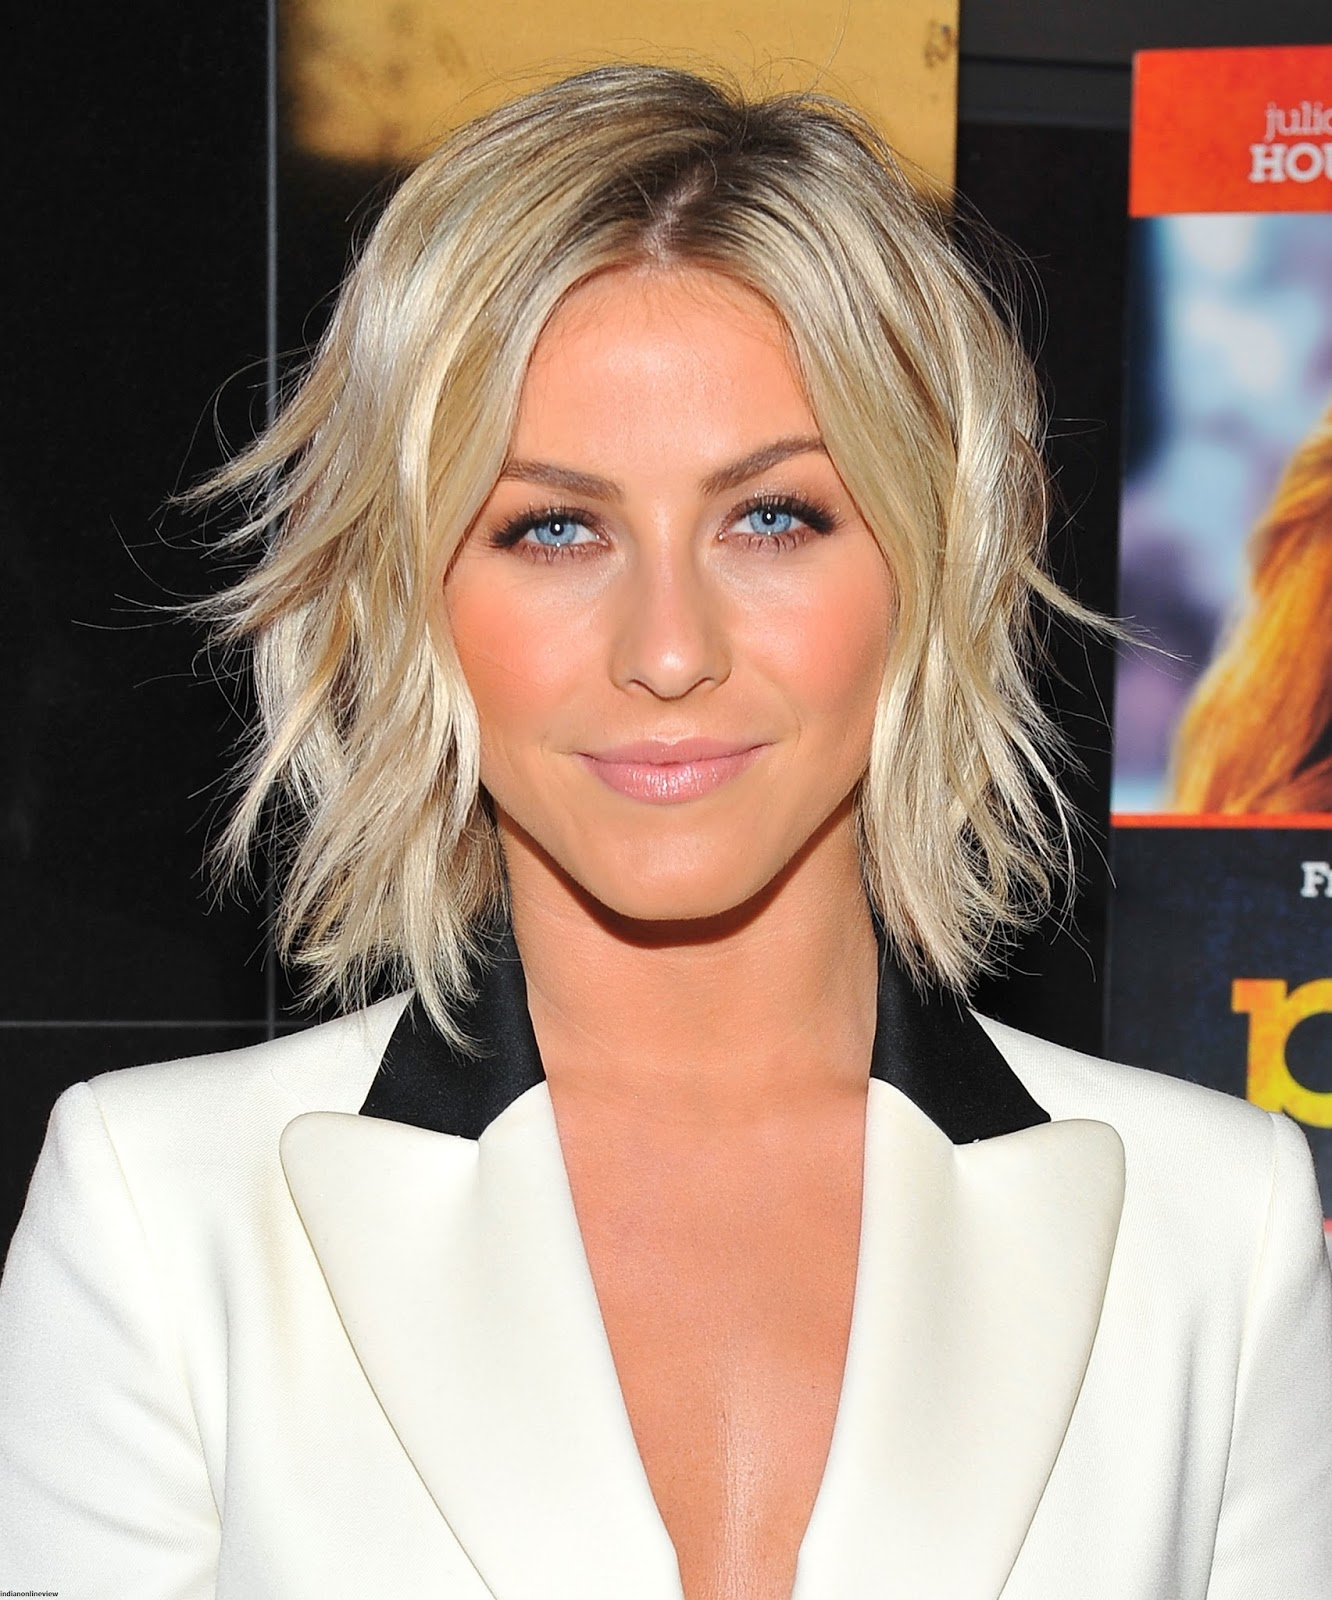 Julianne Hough high resolution pictures, Julianne Hough hot hd